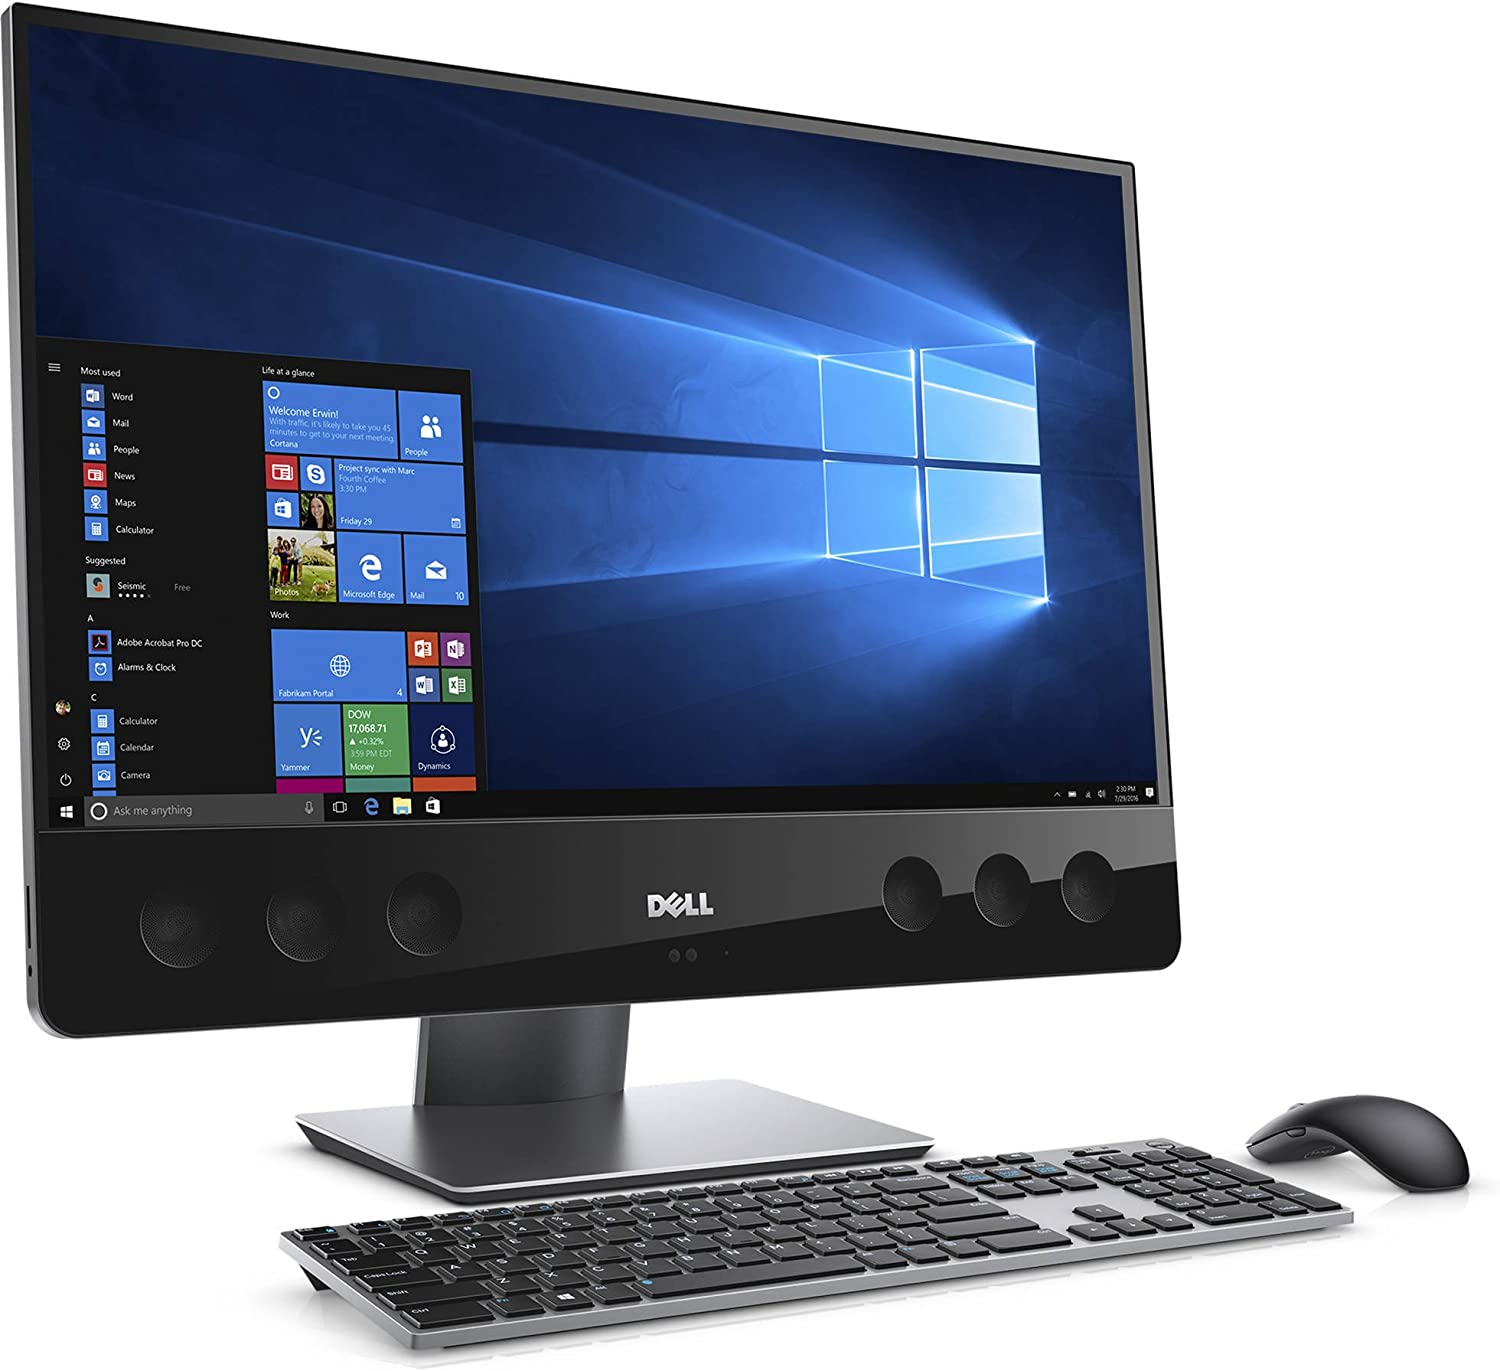 Dell XPS 27-7760 All-in-One Desktop PC - 27in UHD Display - Intel Core i7-7700 3.6GHz, 16GB DDR4, 2TB HDD + 32GB SSD, Windows 10 Home (Renewed)